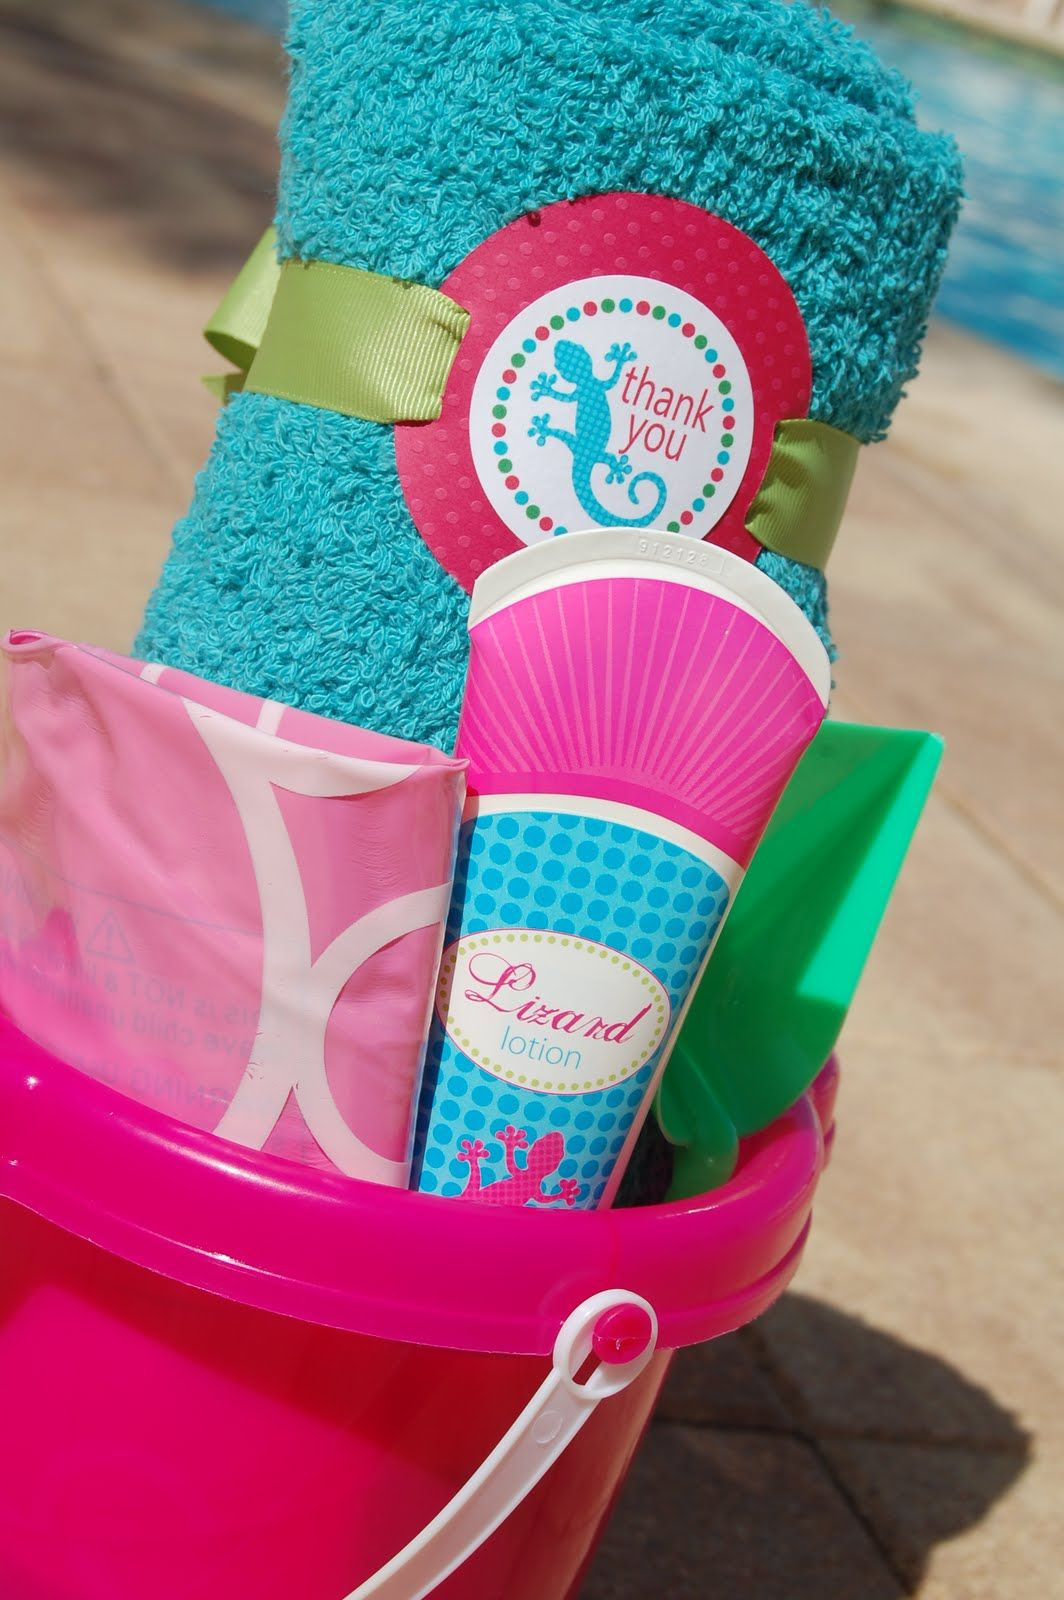 Party Favors Sand Pails Filled With Colorful Towel Beach Ball